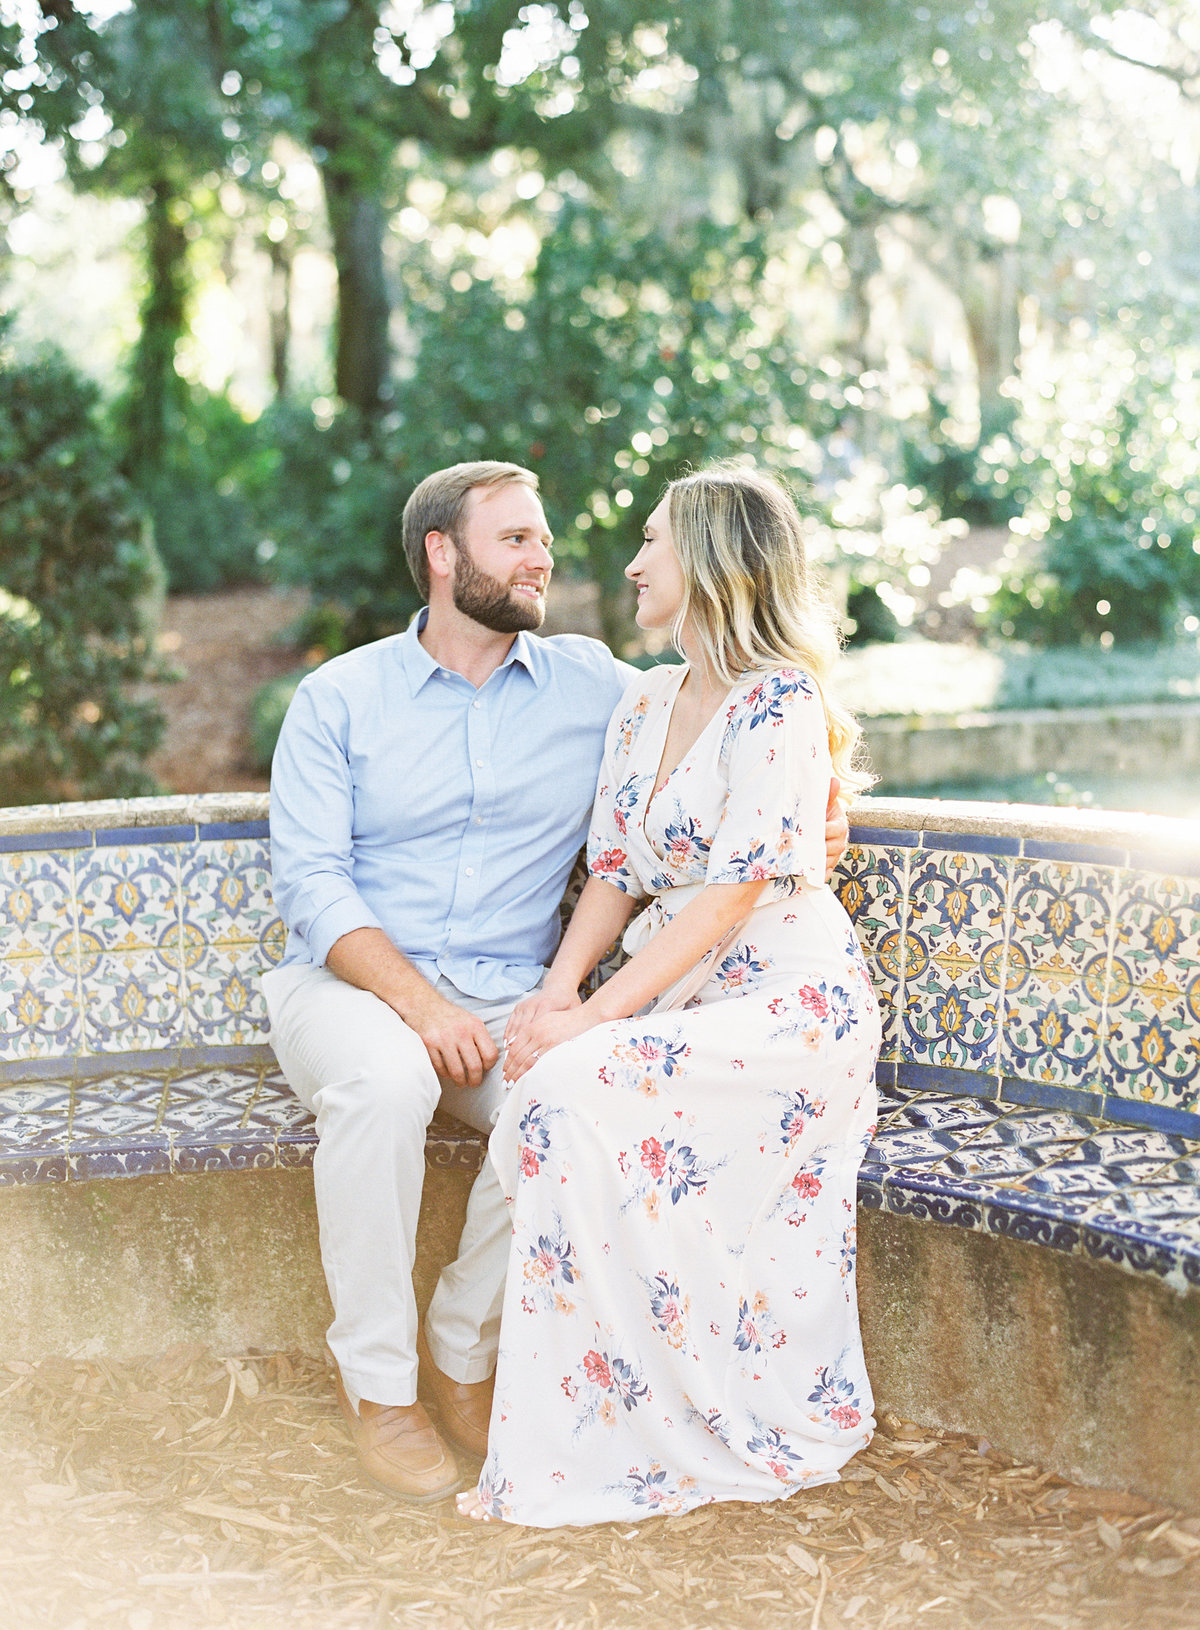 Bok_Tower_Garden_Film_Fine_Art_Engagement_Session-22